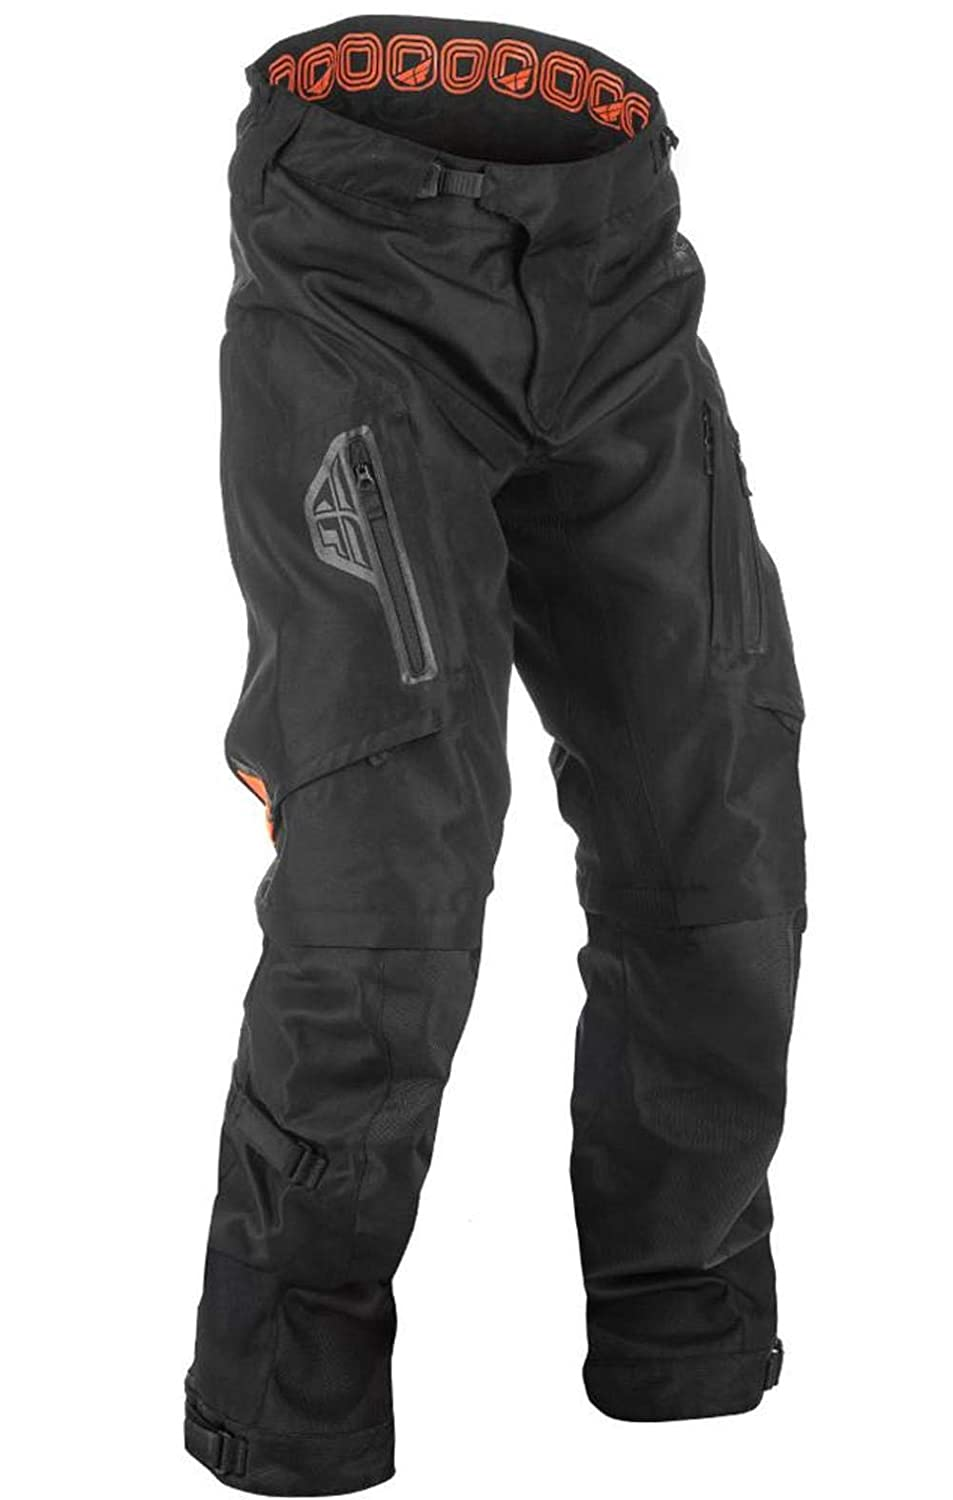 Fly Racing Mens Patrol Over Boot Pants Black//Gray, Size 38